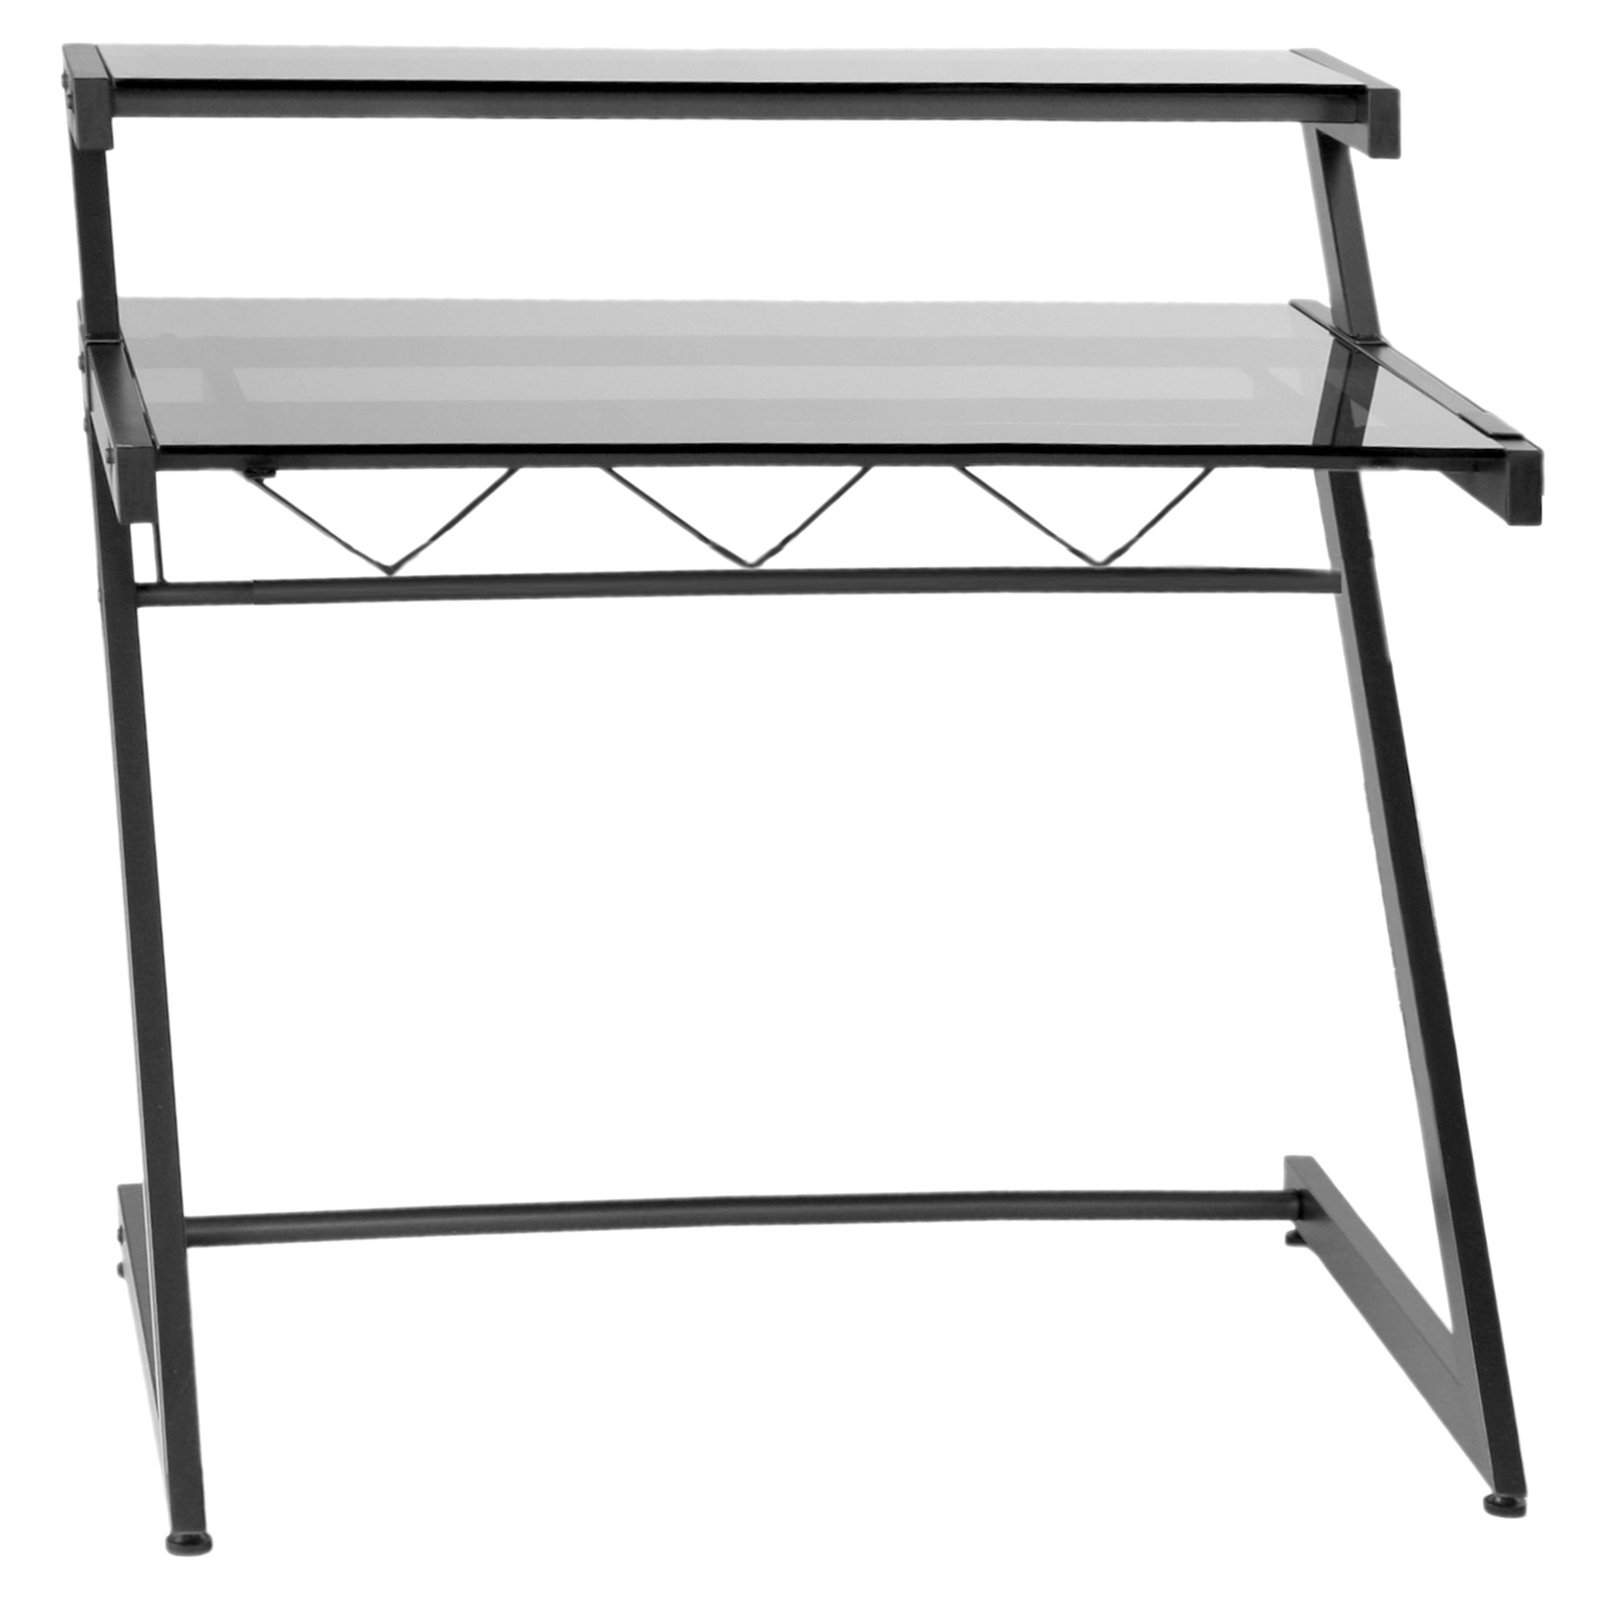 Euro Style Z Deluxe Medium Desk with Shelf - Graphite Black / Smoked Glass